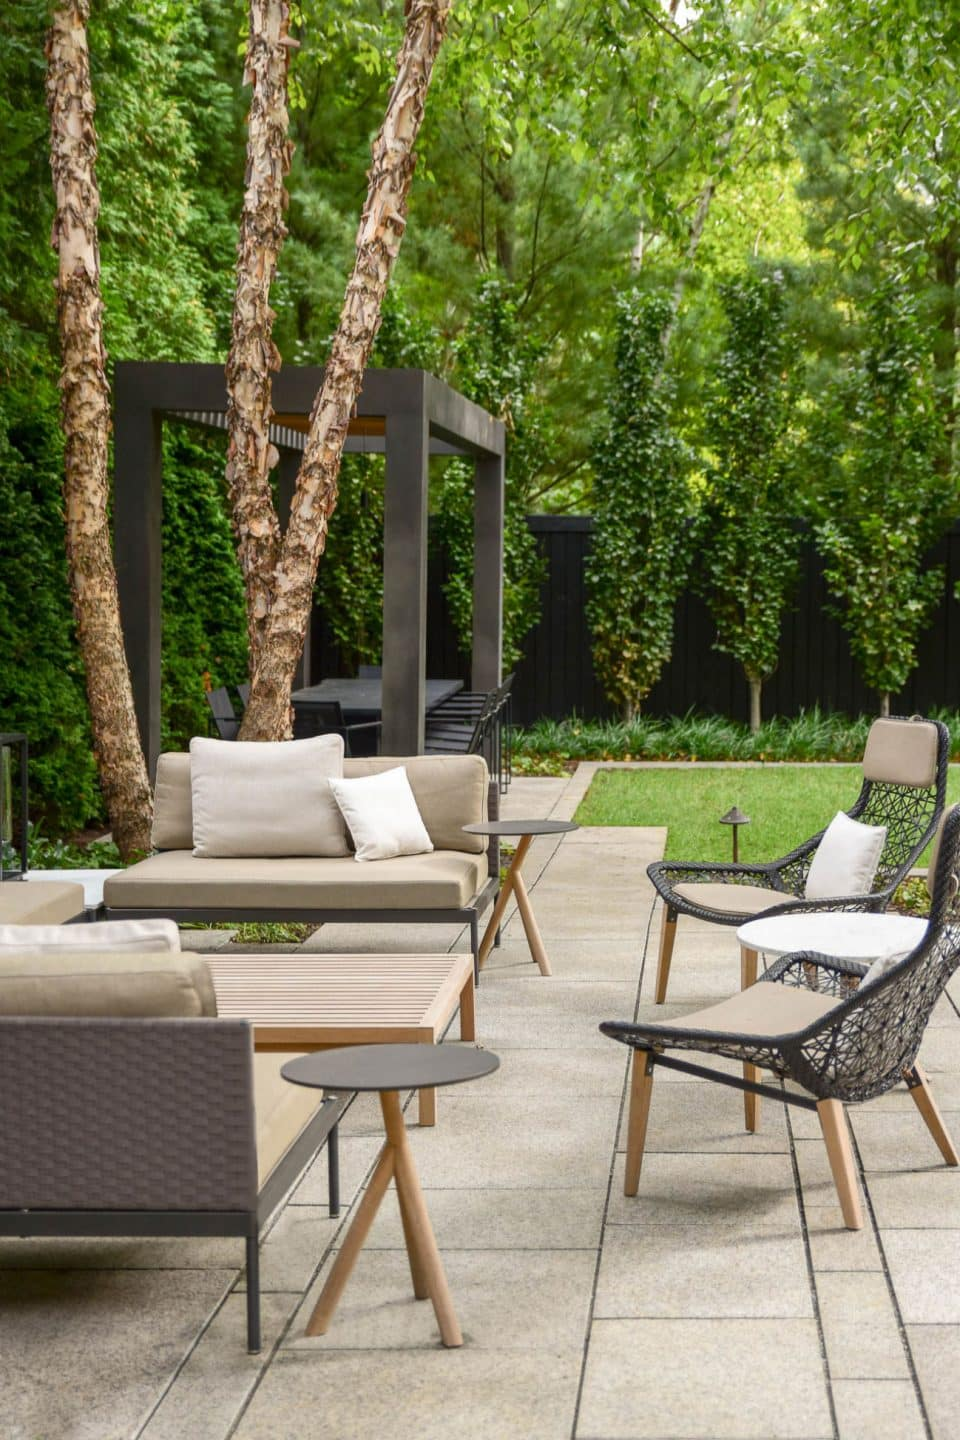 Designers of the Best Contemporary Outdoor Furniture Think Outside the Box